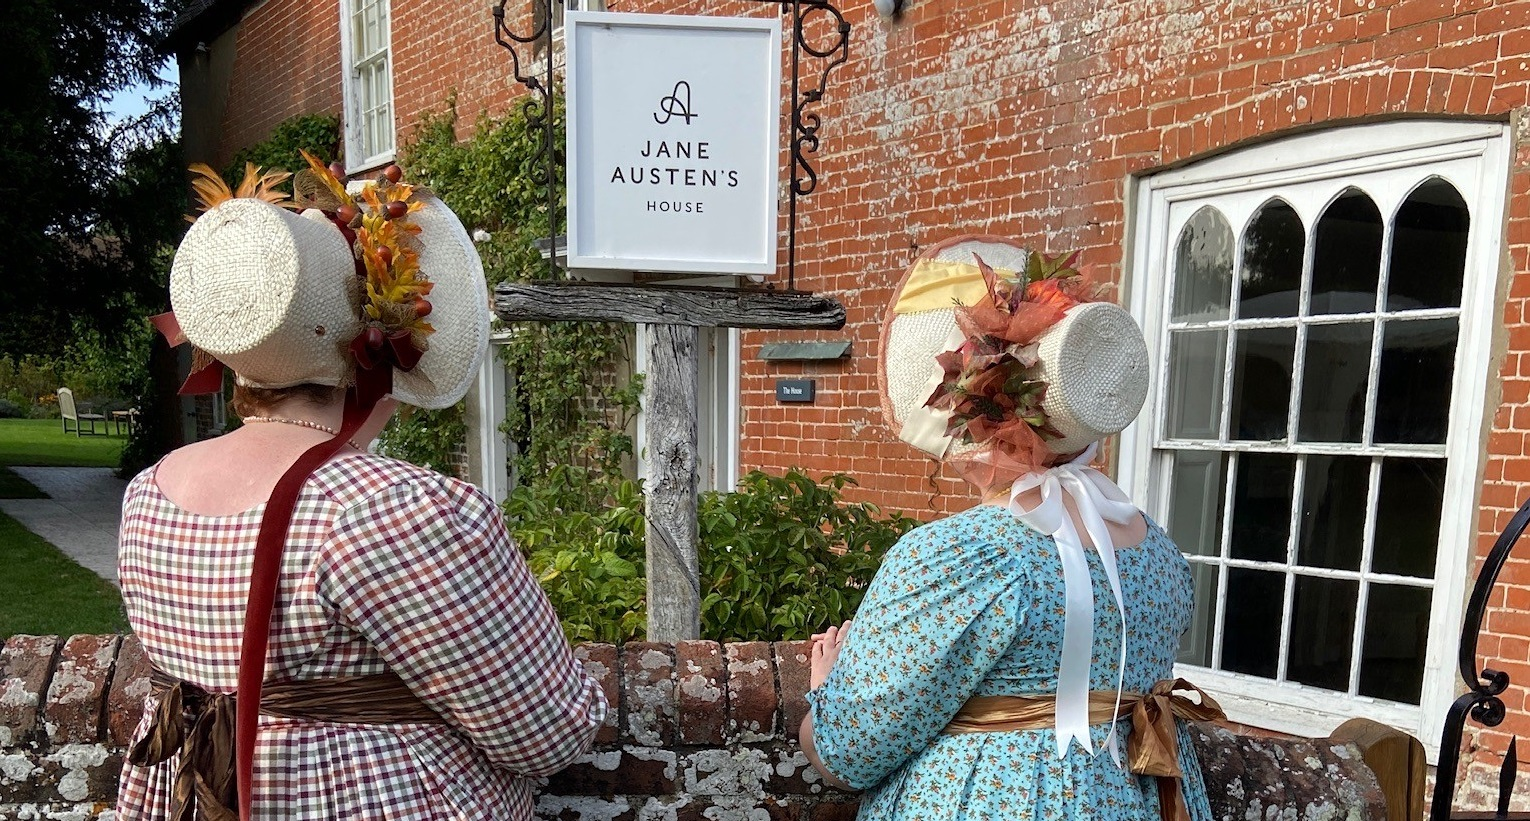 Well-dressed visitors to Jane Austen's House